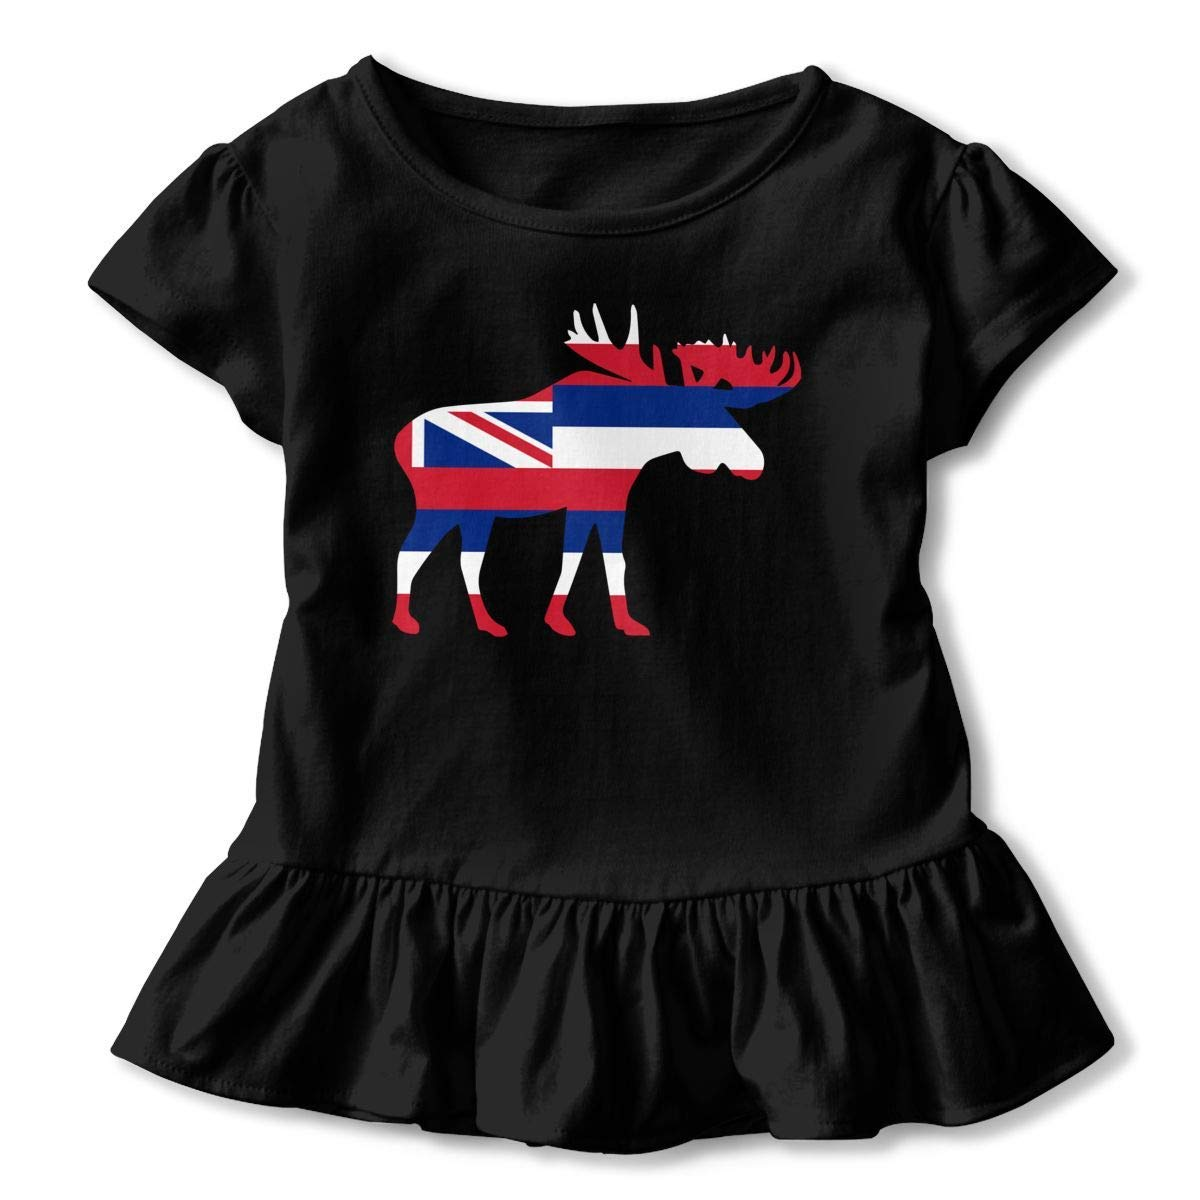 PMsunglasses Short Sleeve Hawaii Moose Shirts for Children Kawaii Blouse Clothes with Falbala 2-6T